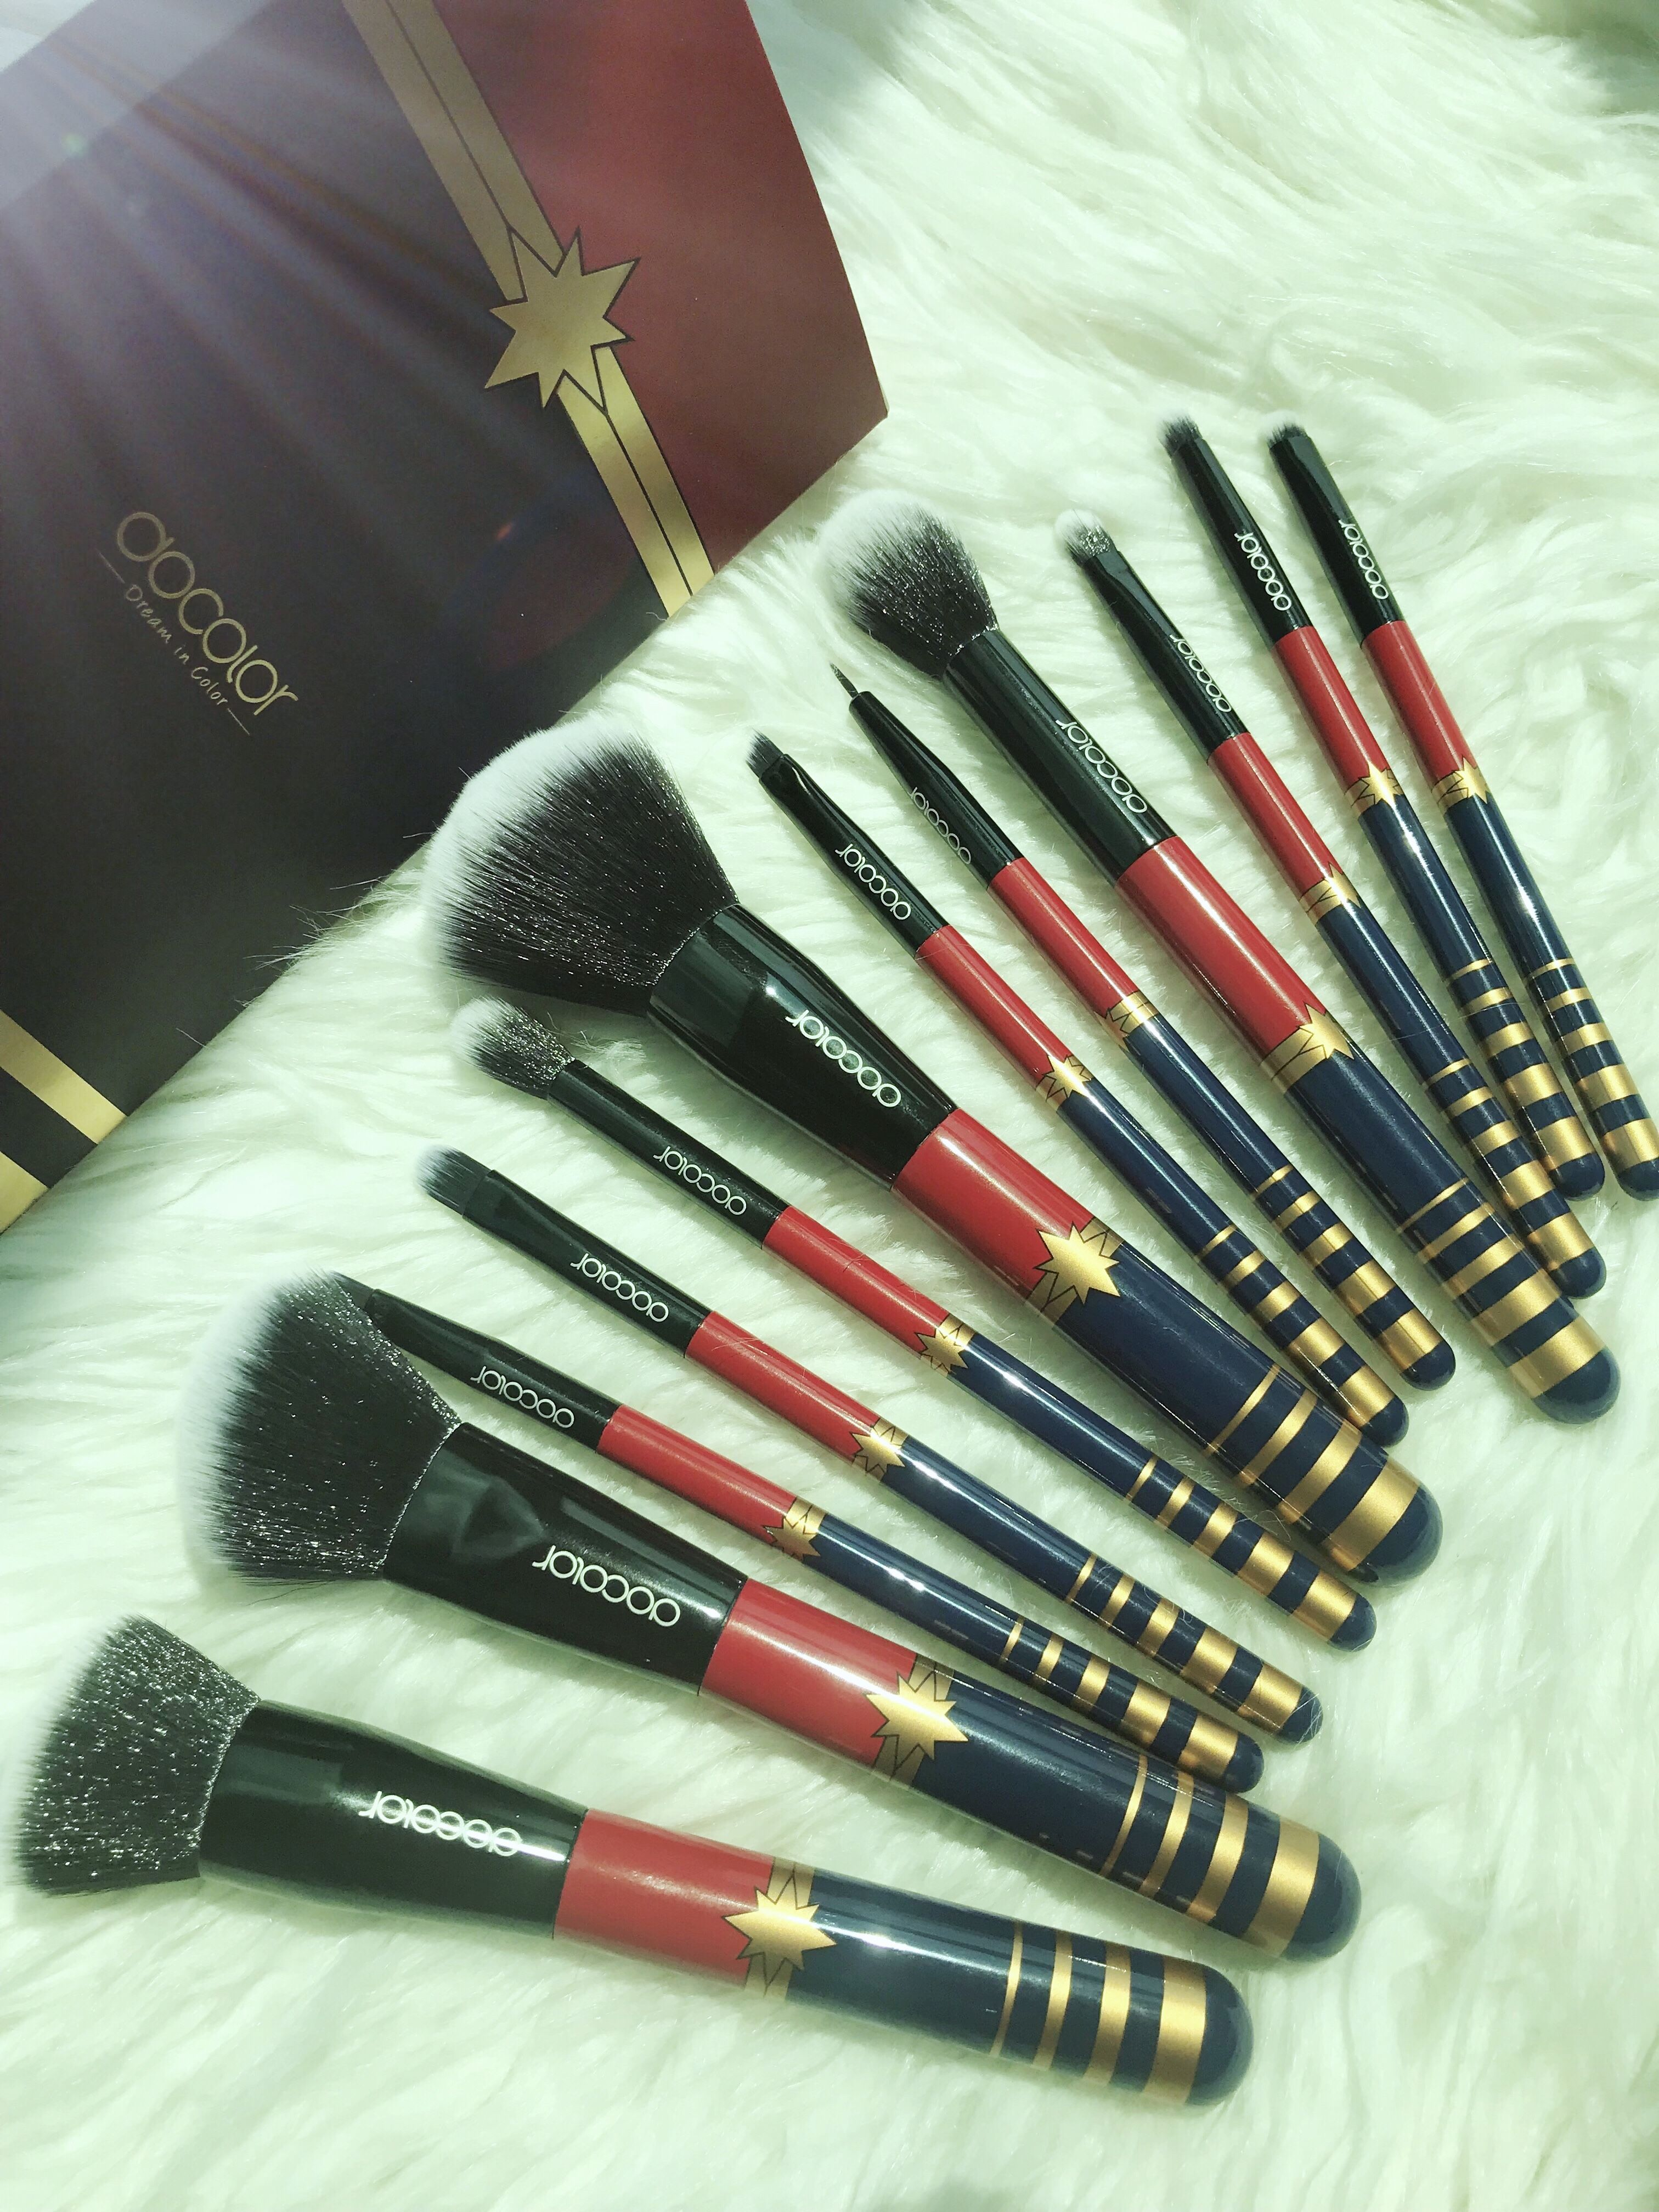 DOCOLOR BRUSHES wonderwomen makeupbrush (With images